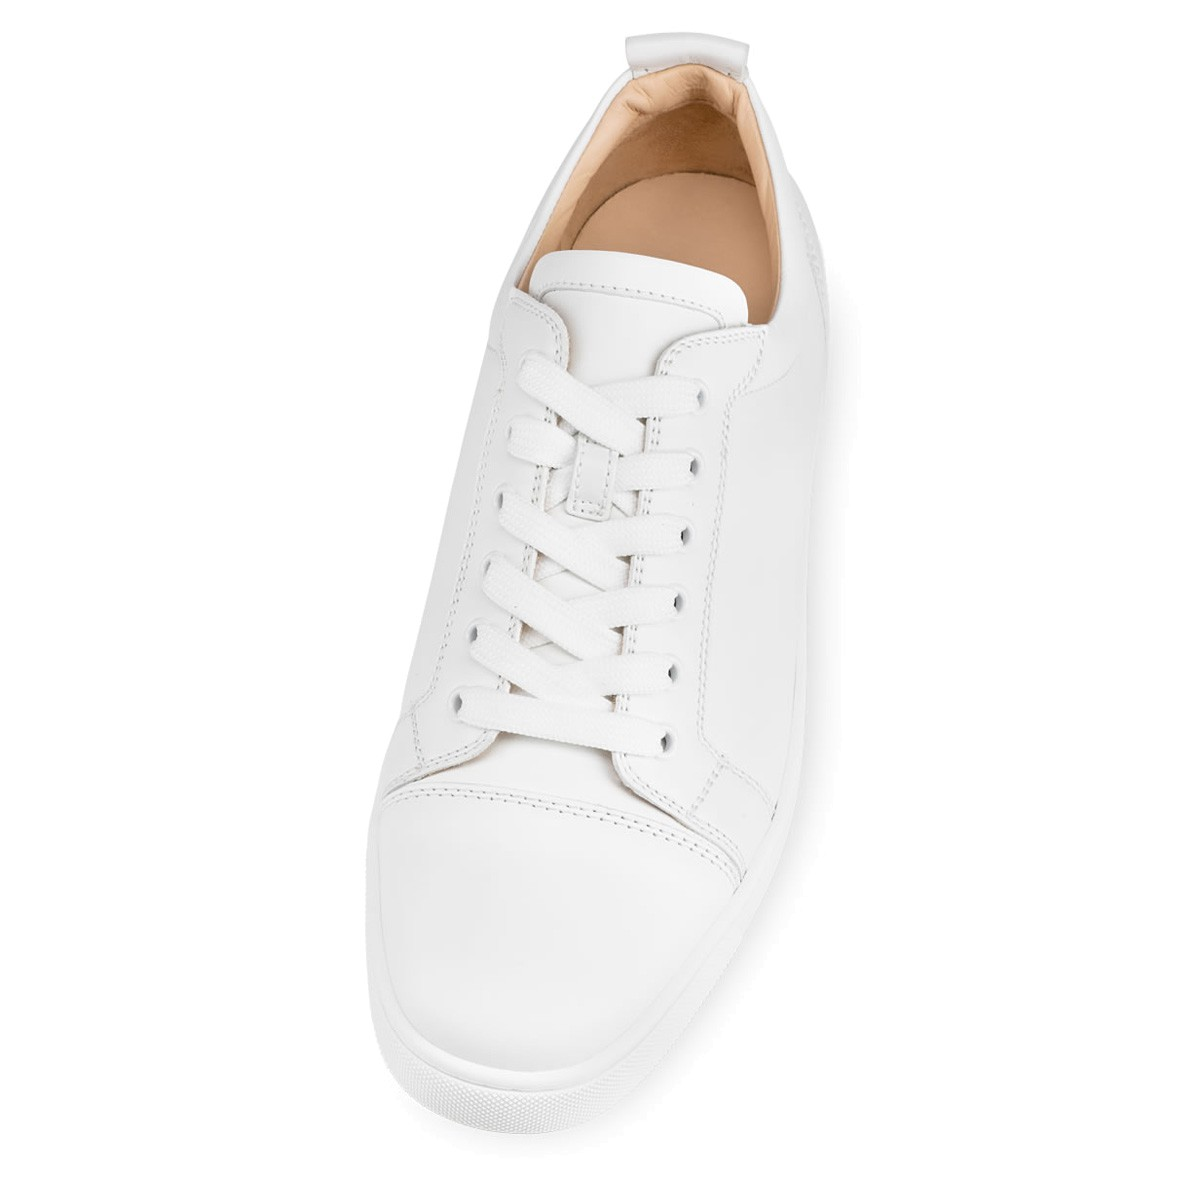 d62f6ff75fa Louis Junior White Leather - Men Shoes - Christian Louboutin